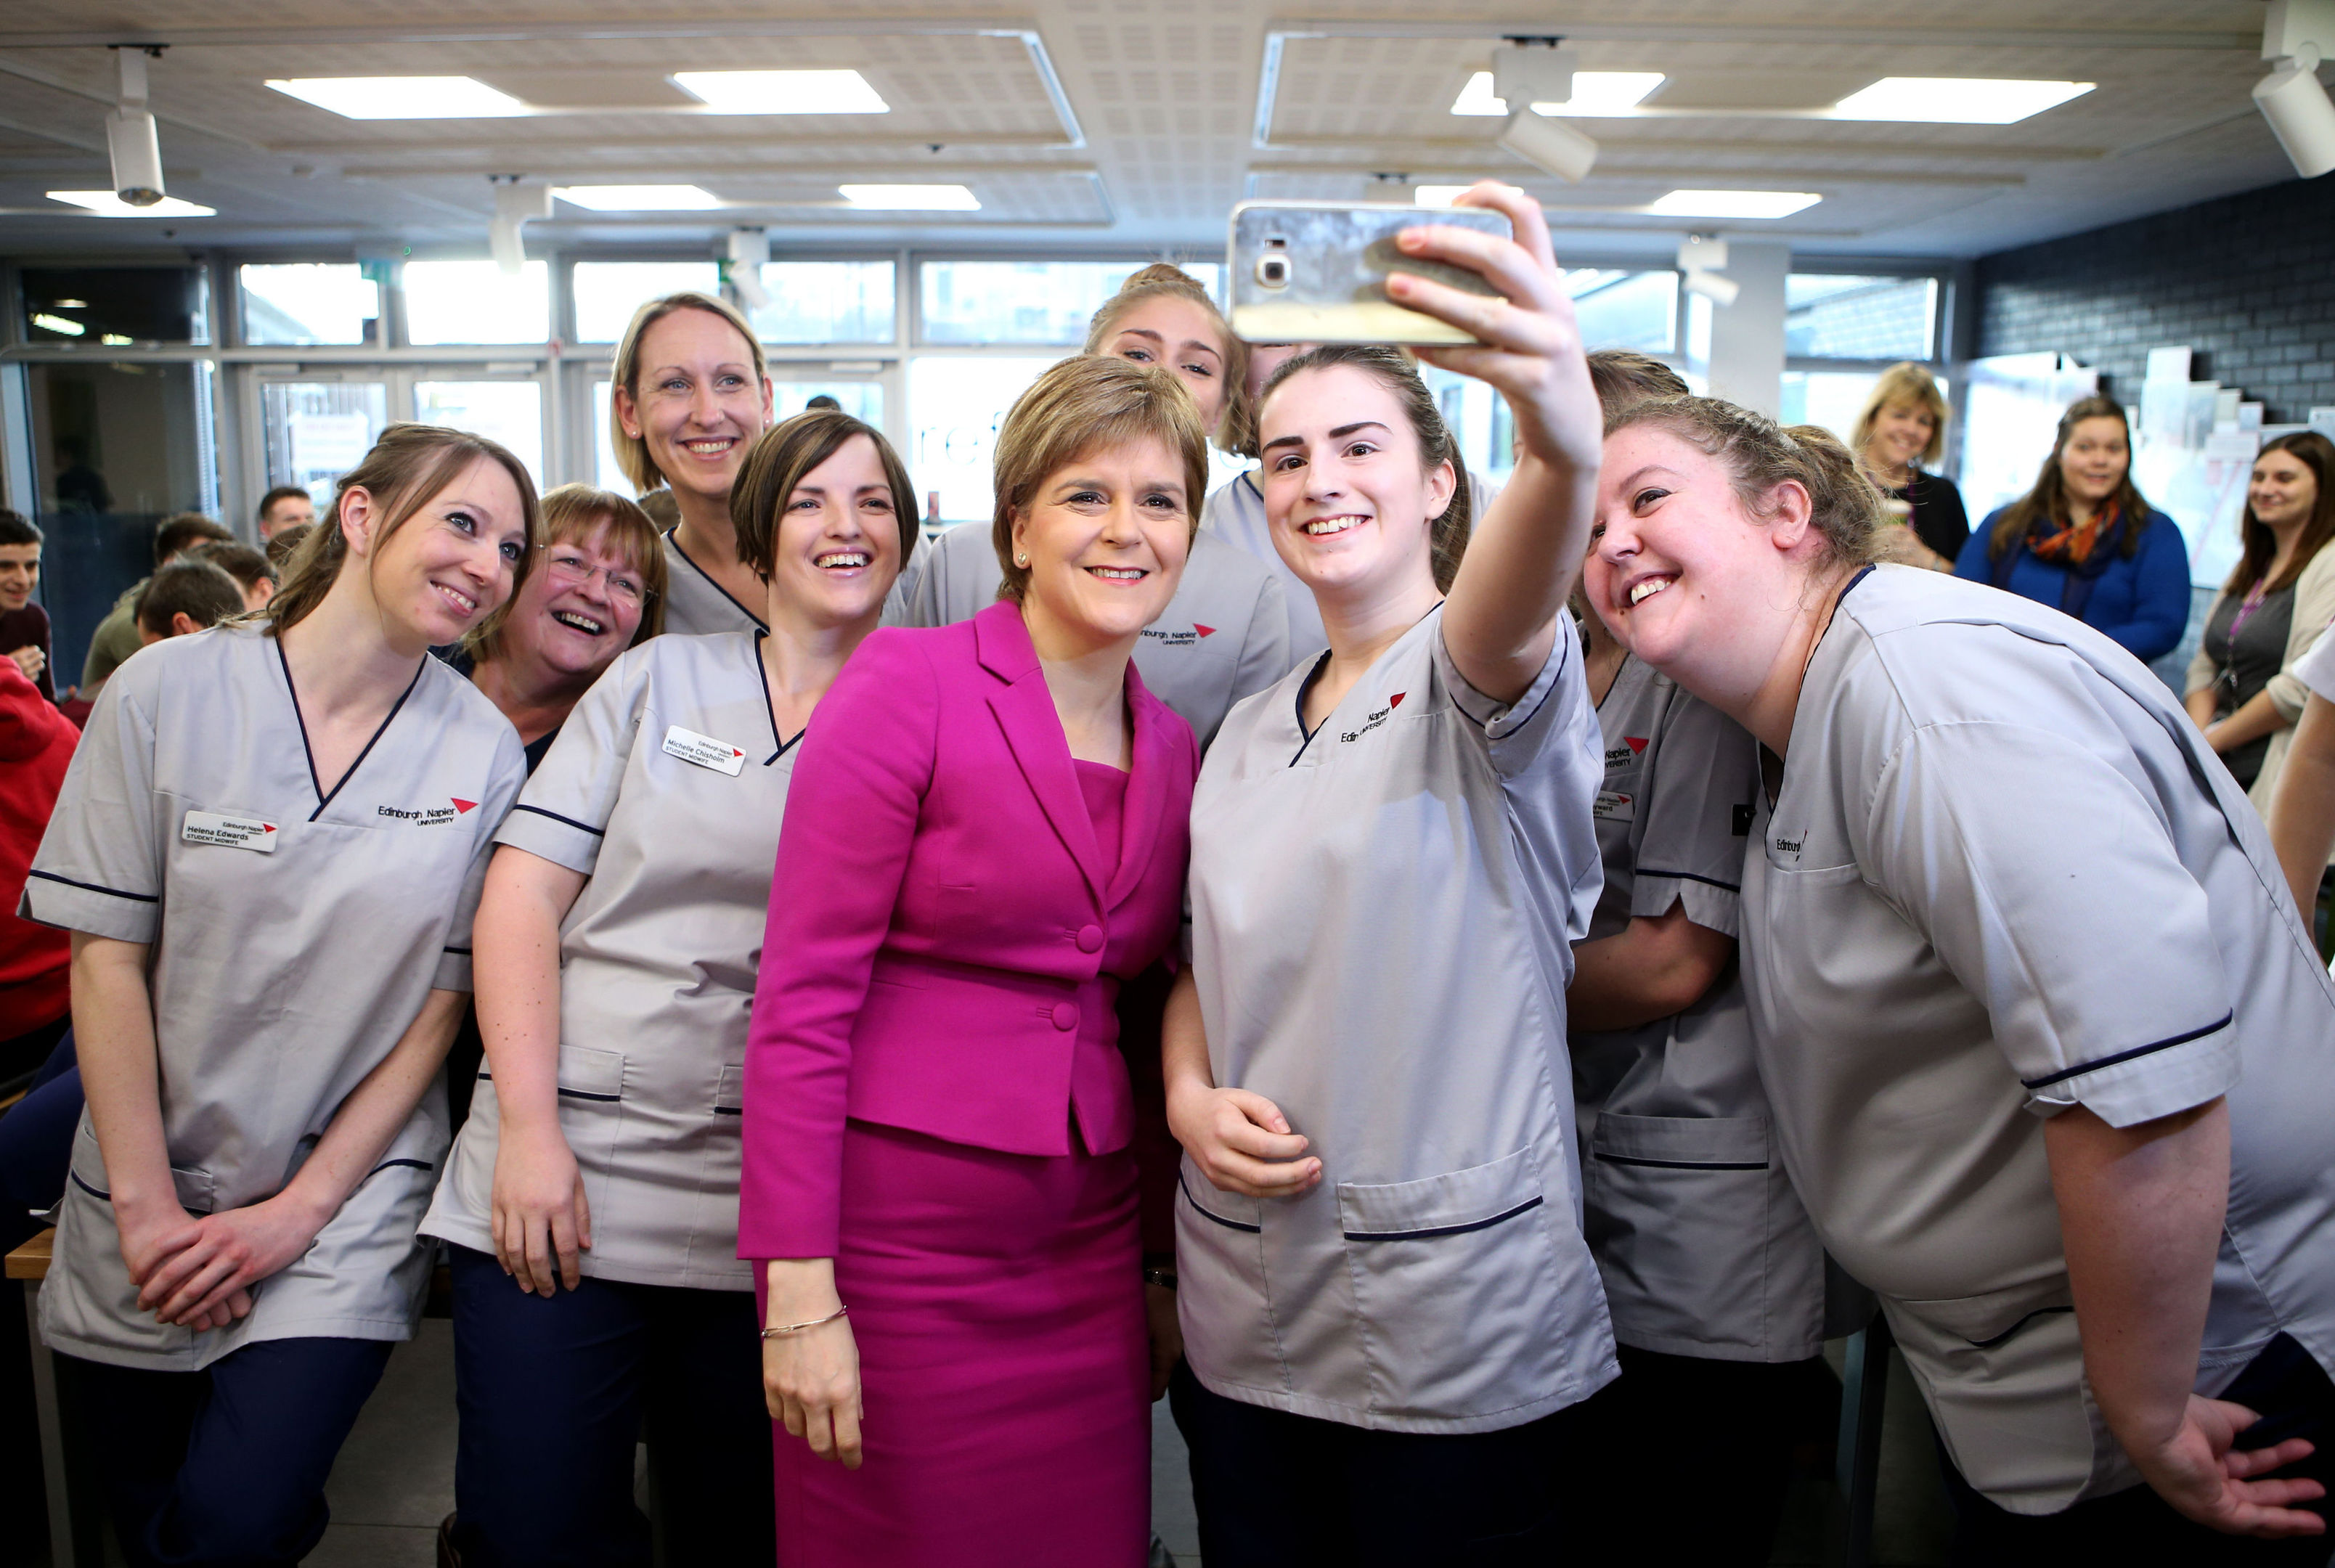 First Minister Nicola Sturgeon poses for a selfie with nursing and midwifery students during a visit to Edinburgh Napier University. (Jane Barlow/PA Wire)